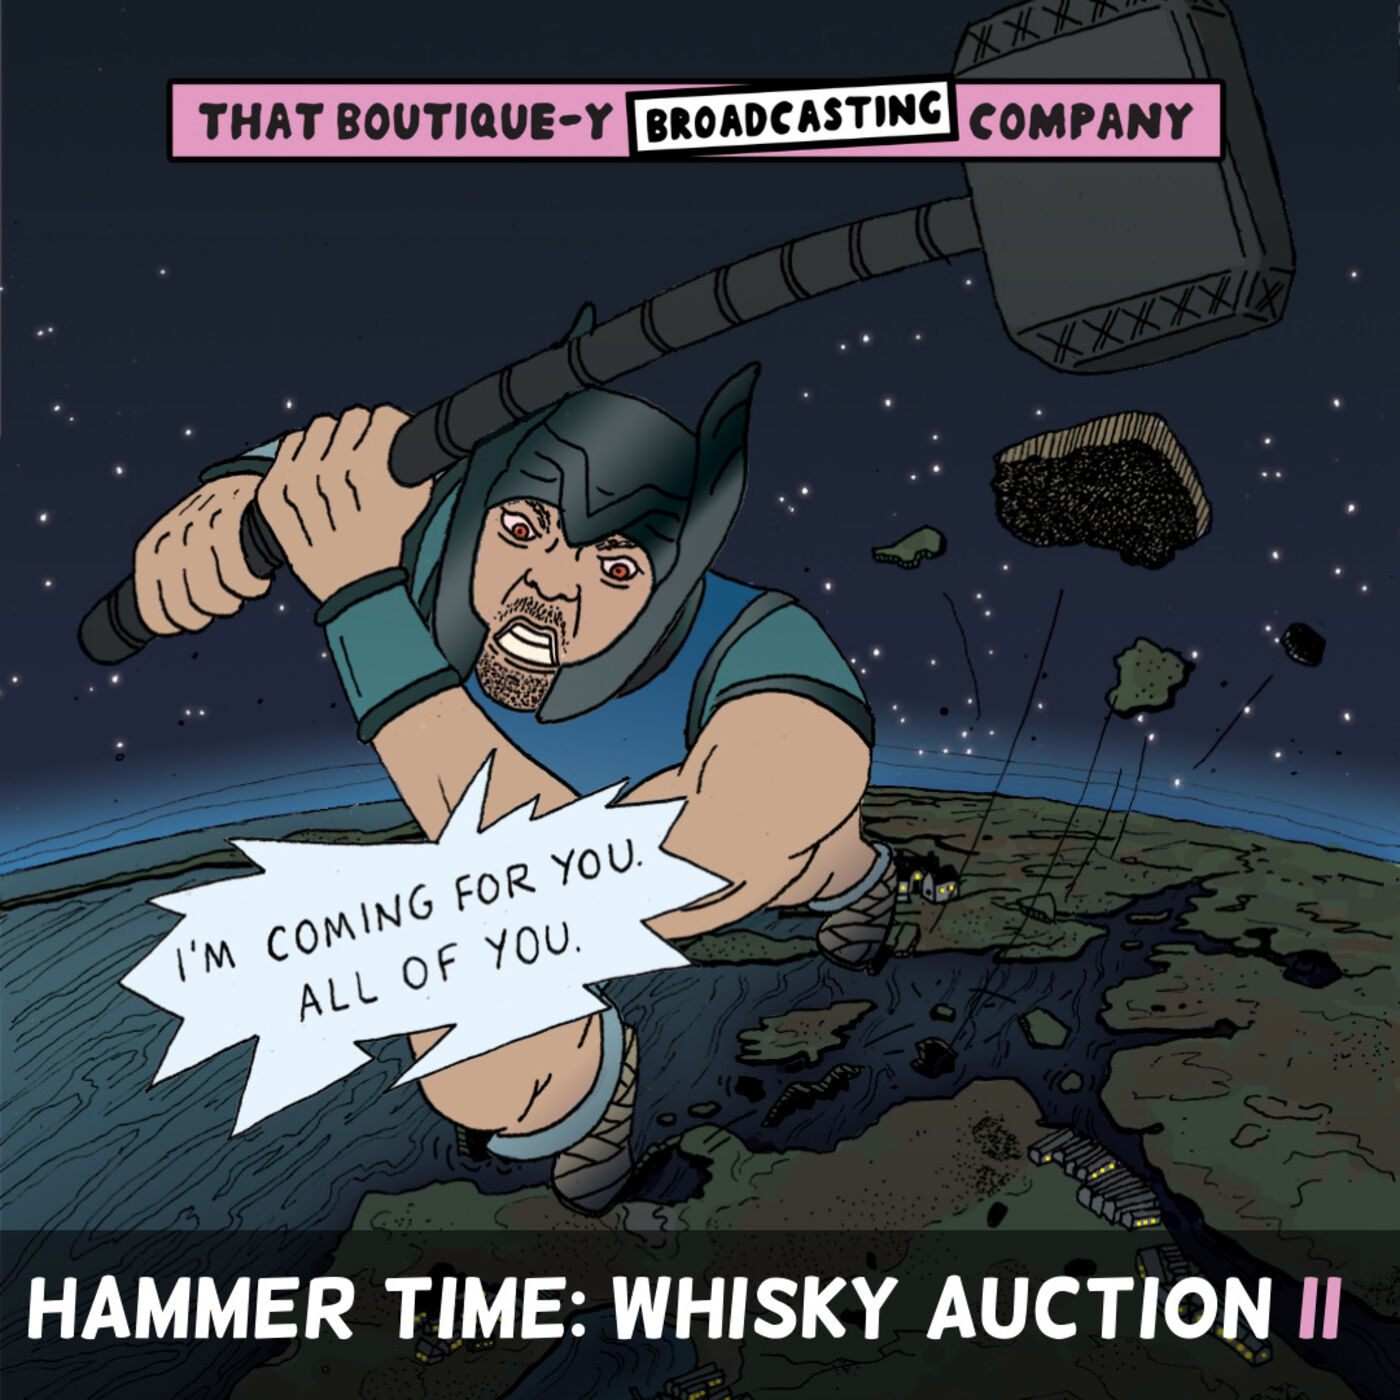 Batch 8.5: Hammer Time: Whisky Auction II